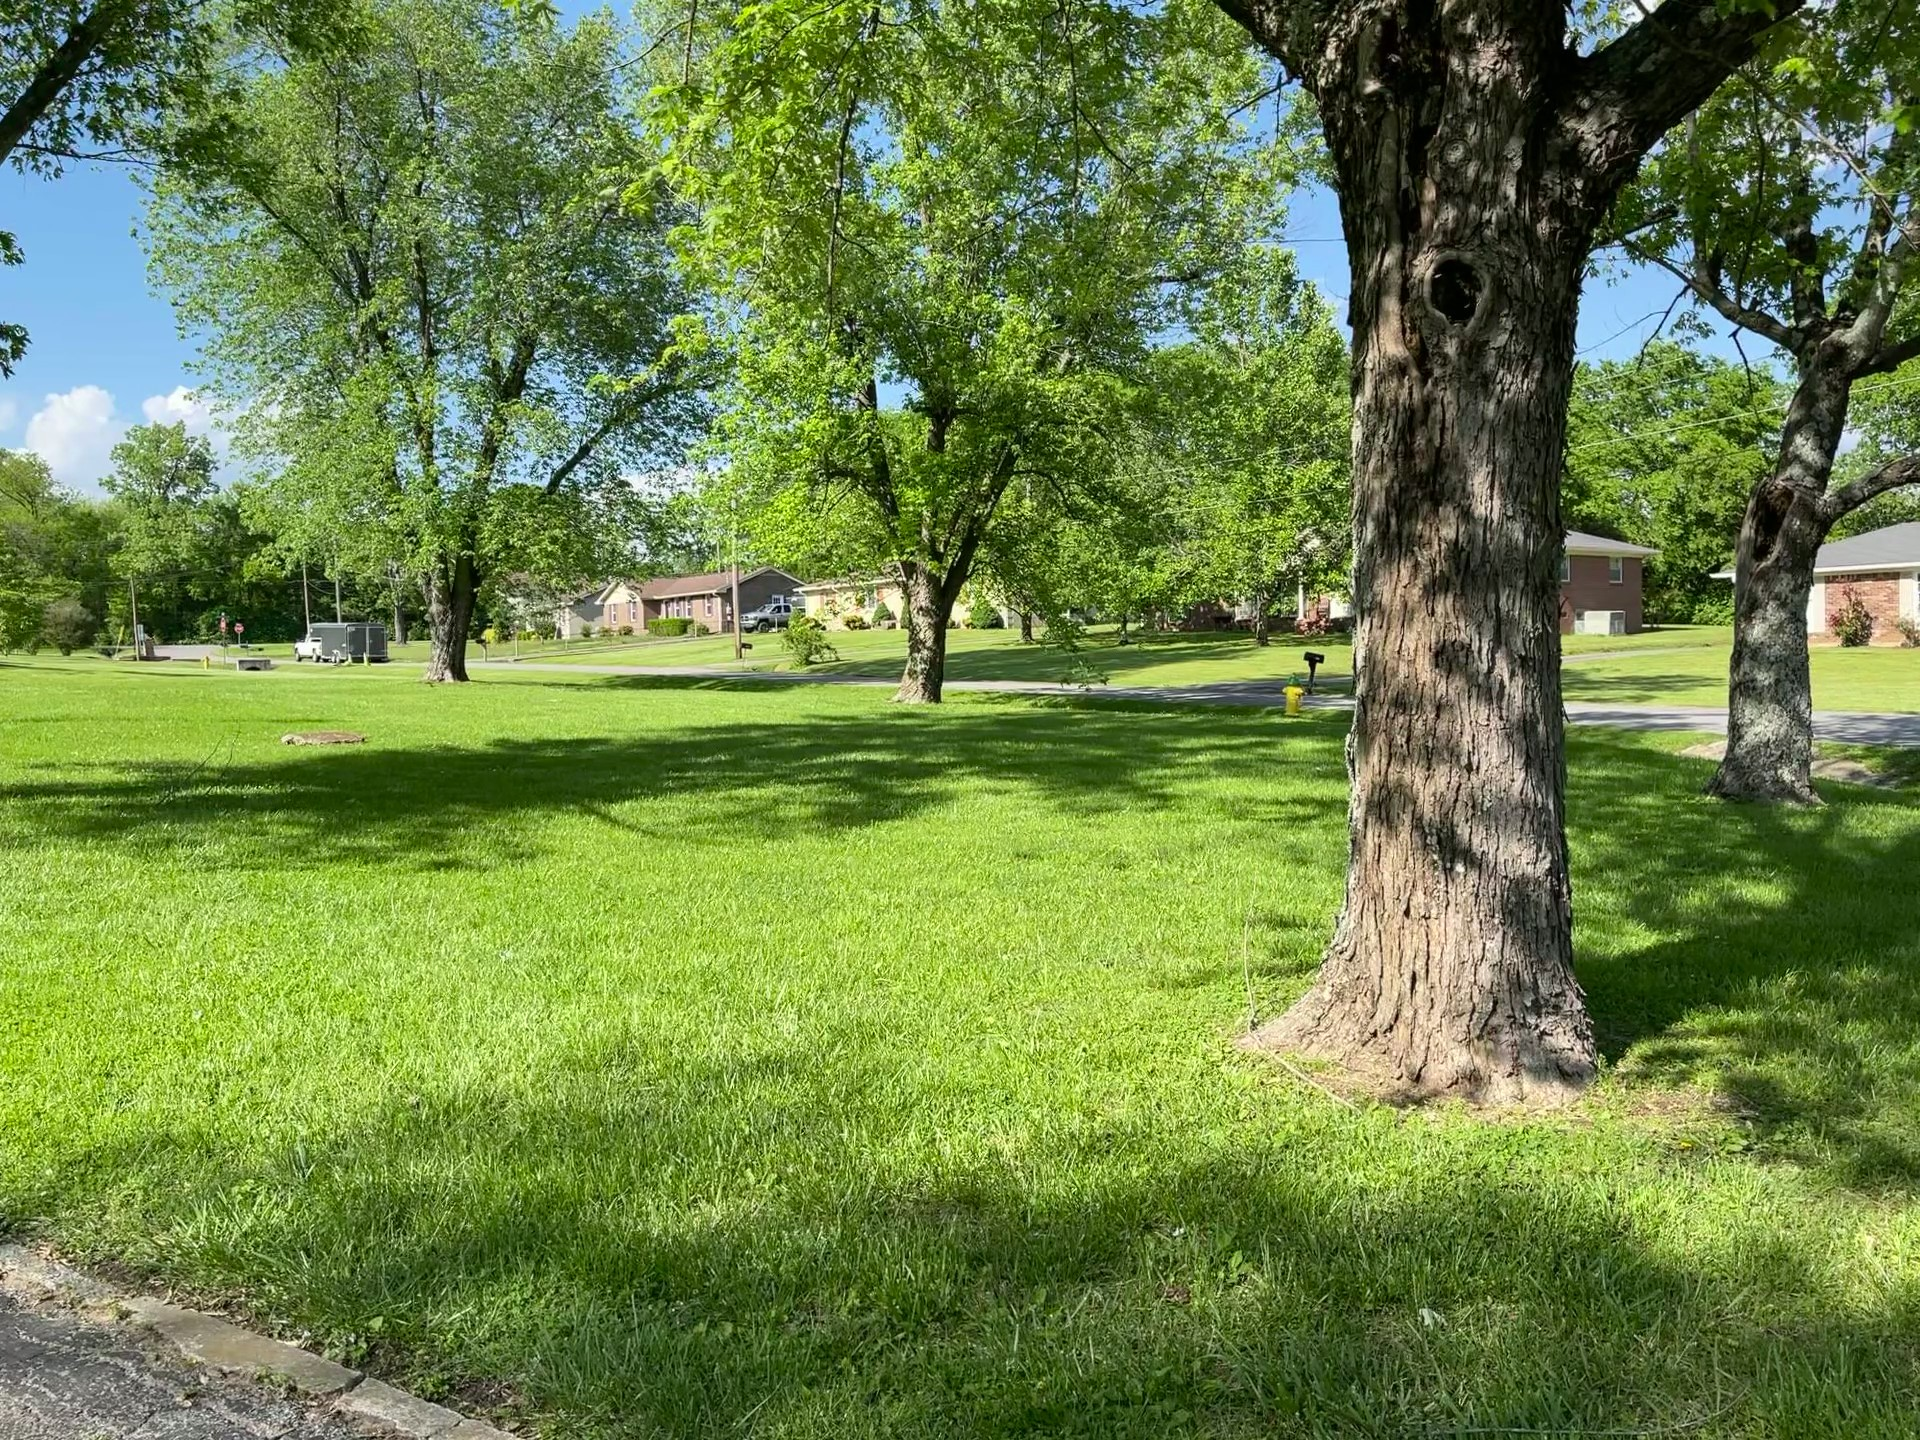 Building Site-Corner Lot-Home for sale next door by the same seller at 888 Leigh Lane-$249,900.00. Buyer will be responsible for own Survey. SOLD as Is